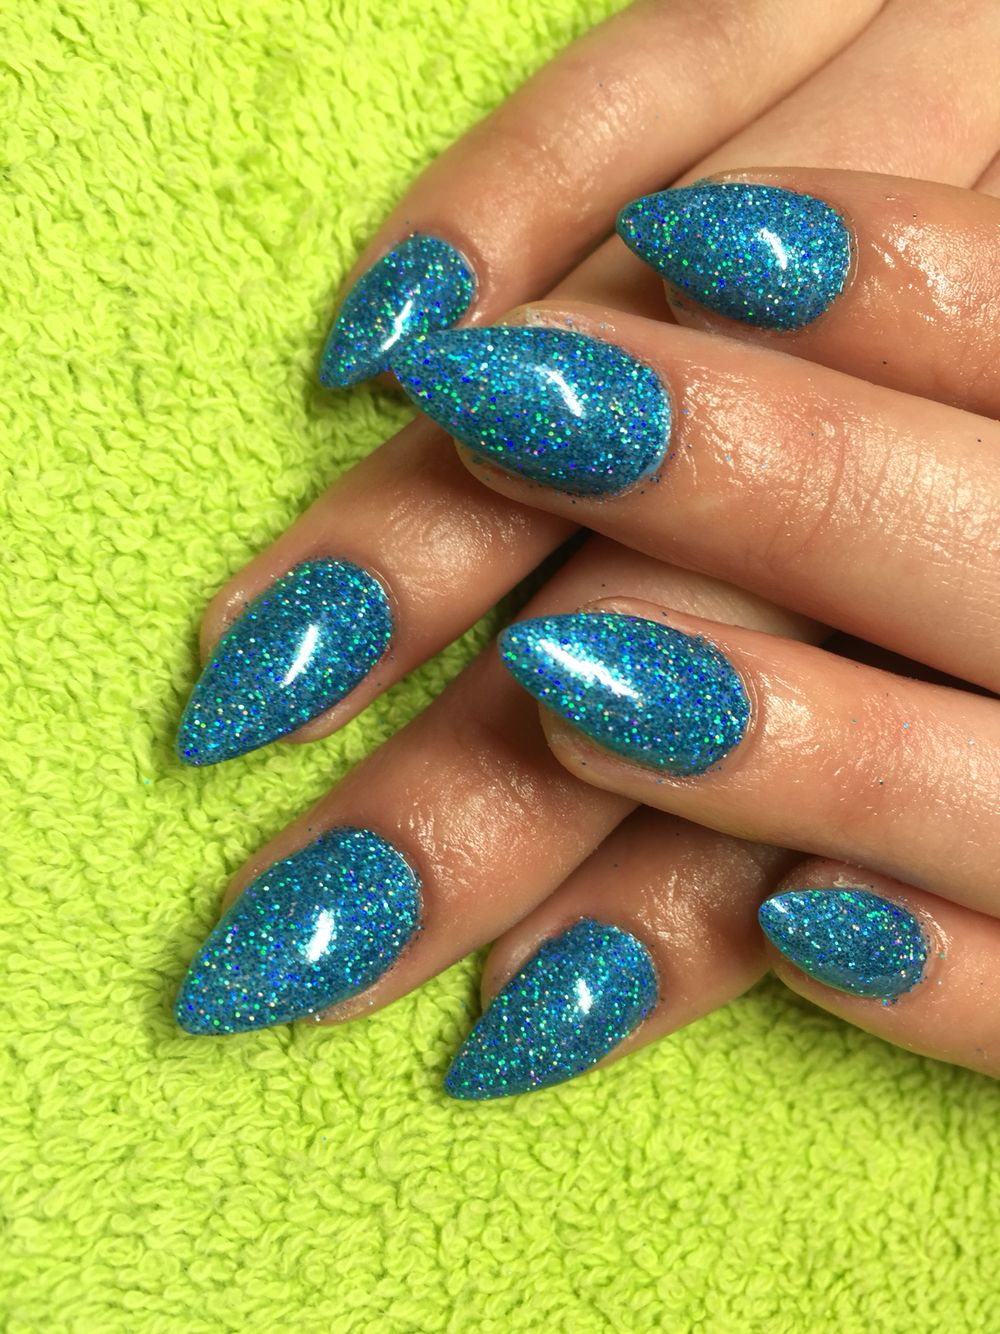 Blue rockstar | Nail designs pictures | Pinterest | Nail designs ...